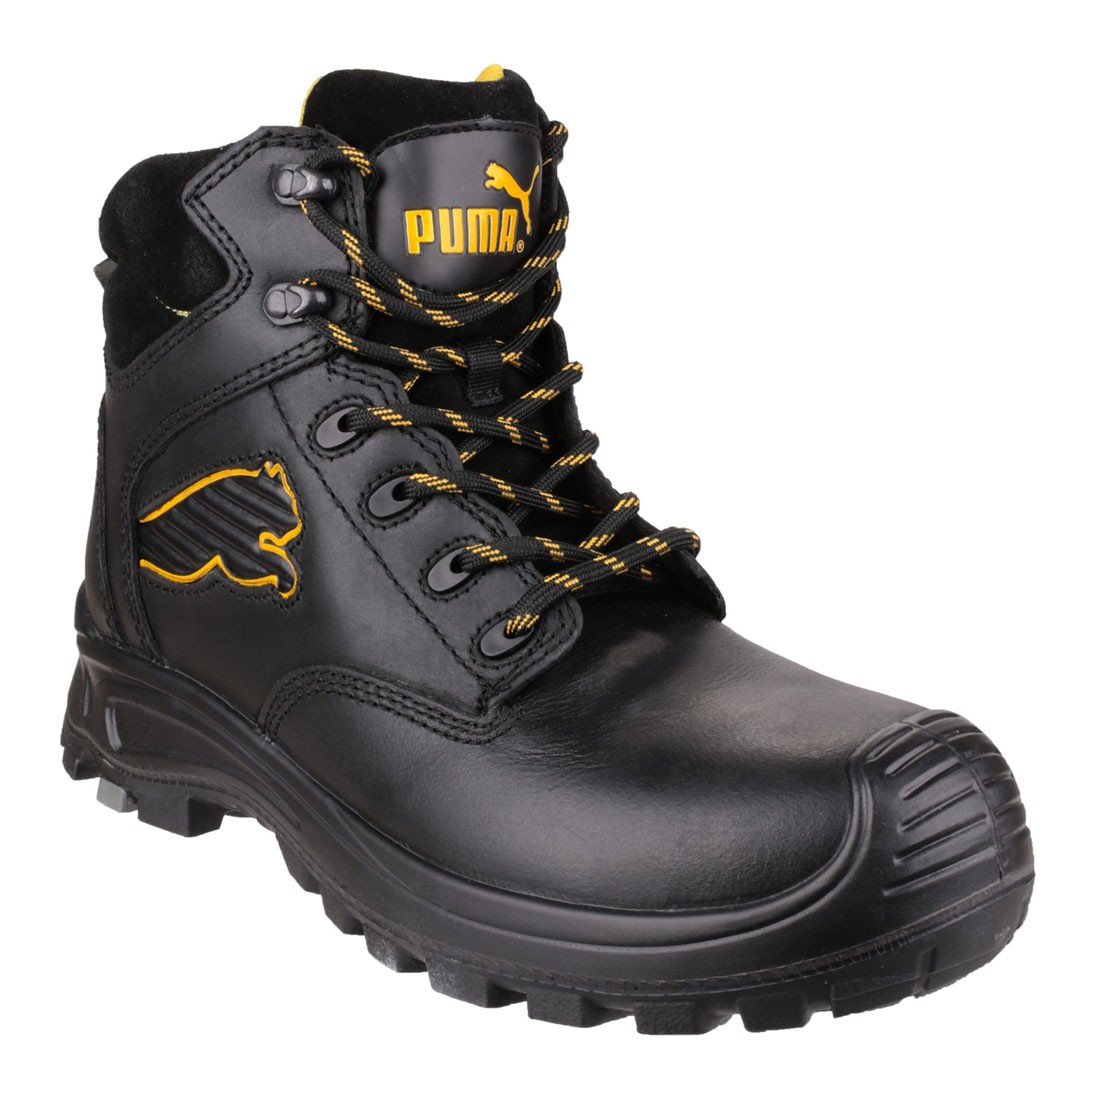 Puma Safety Boots Mens Borneo Mid Black Leather S3 Working Boots